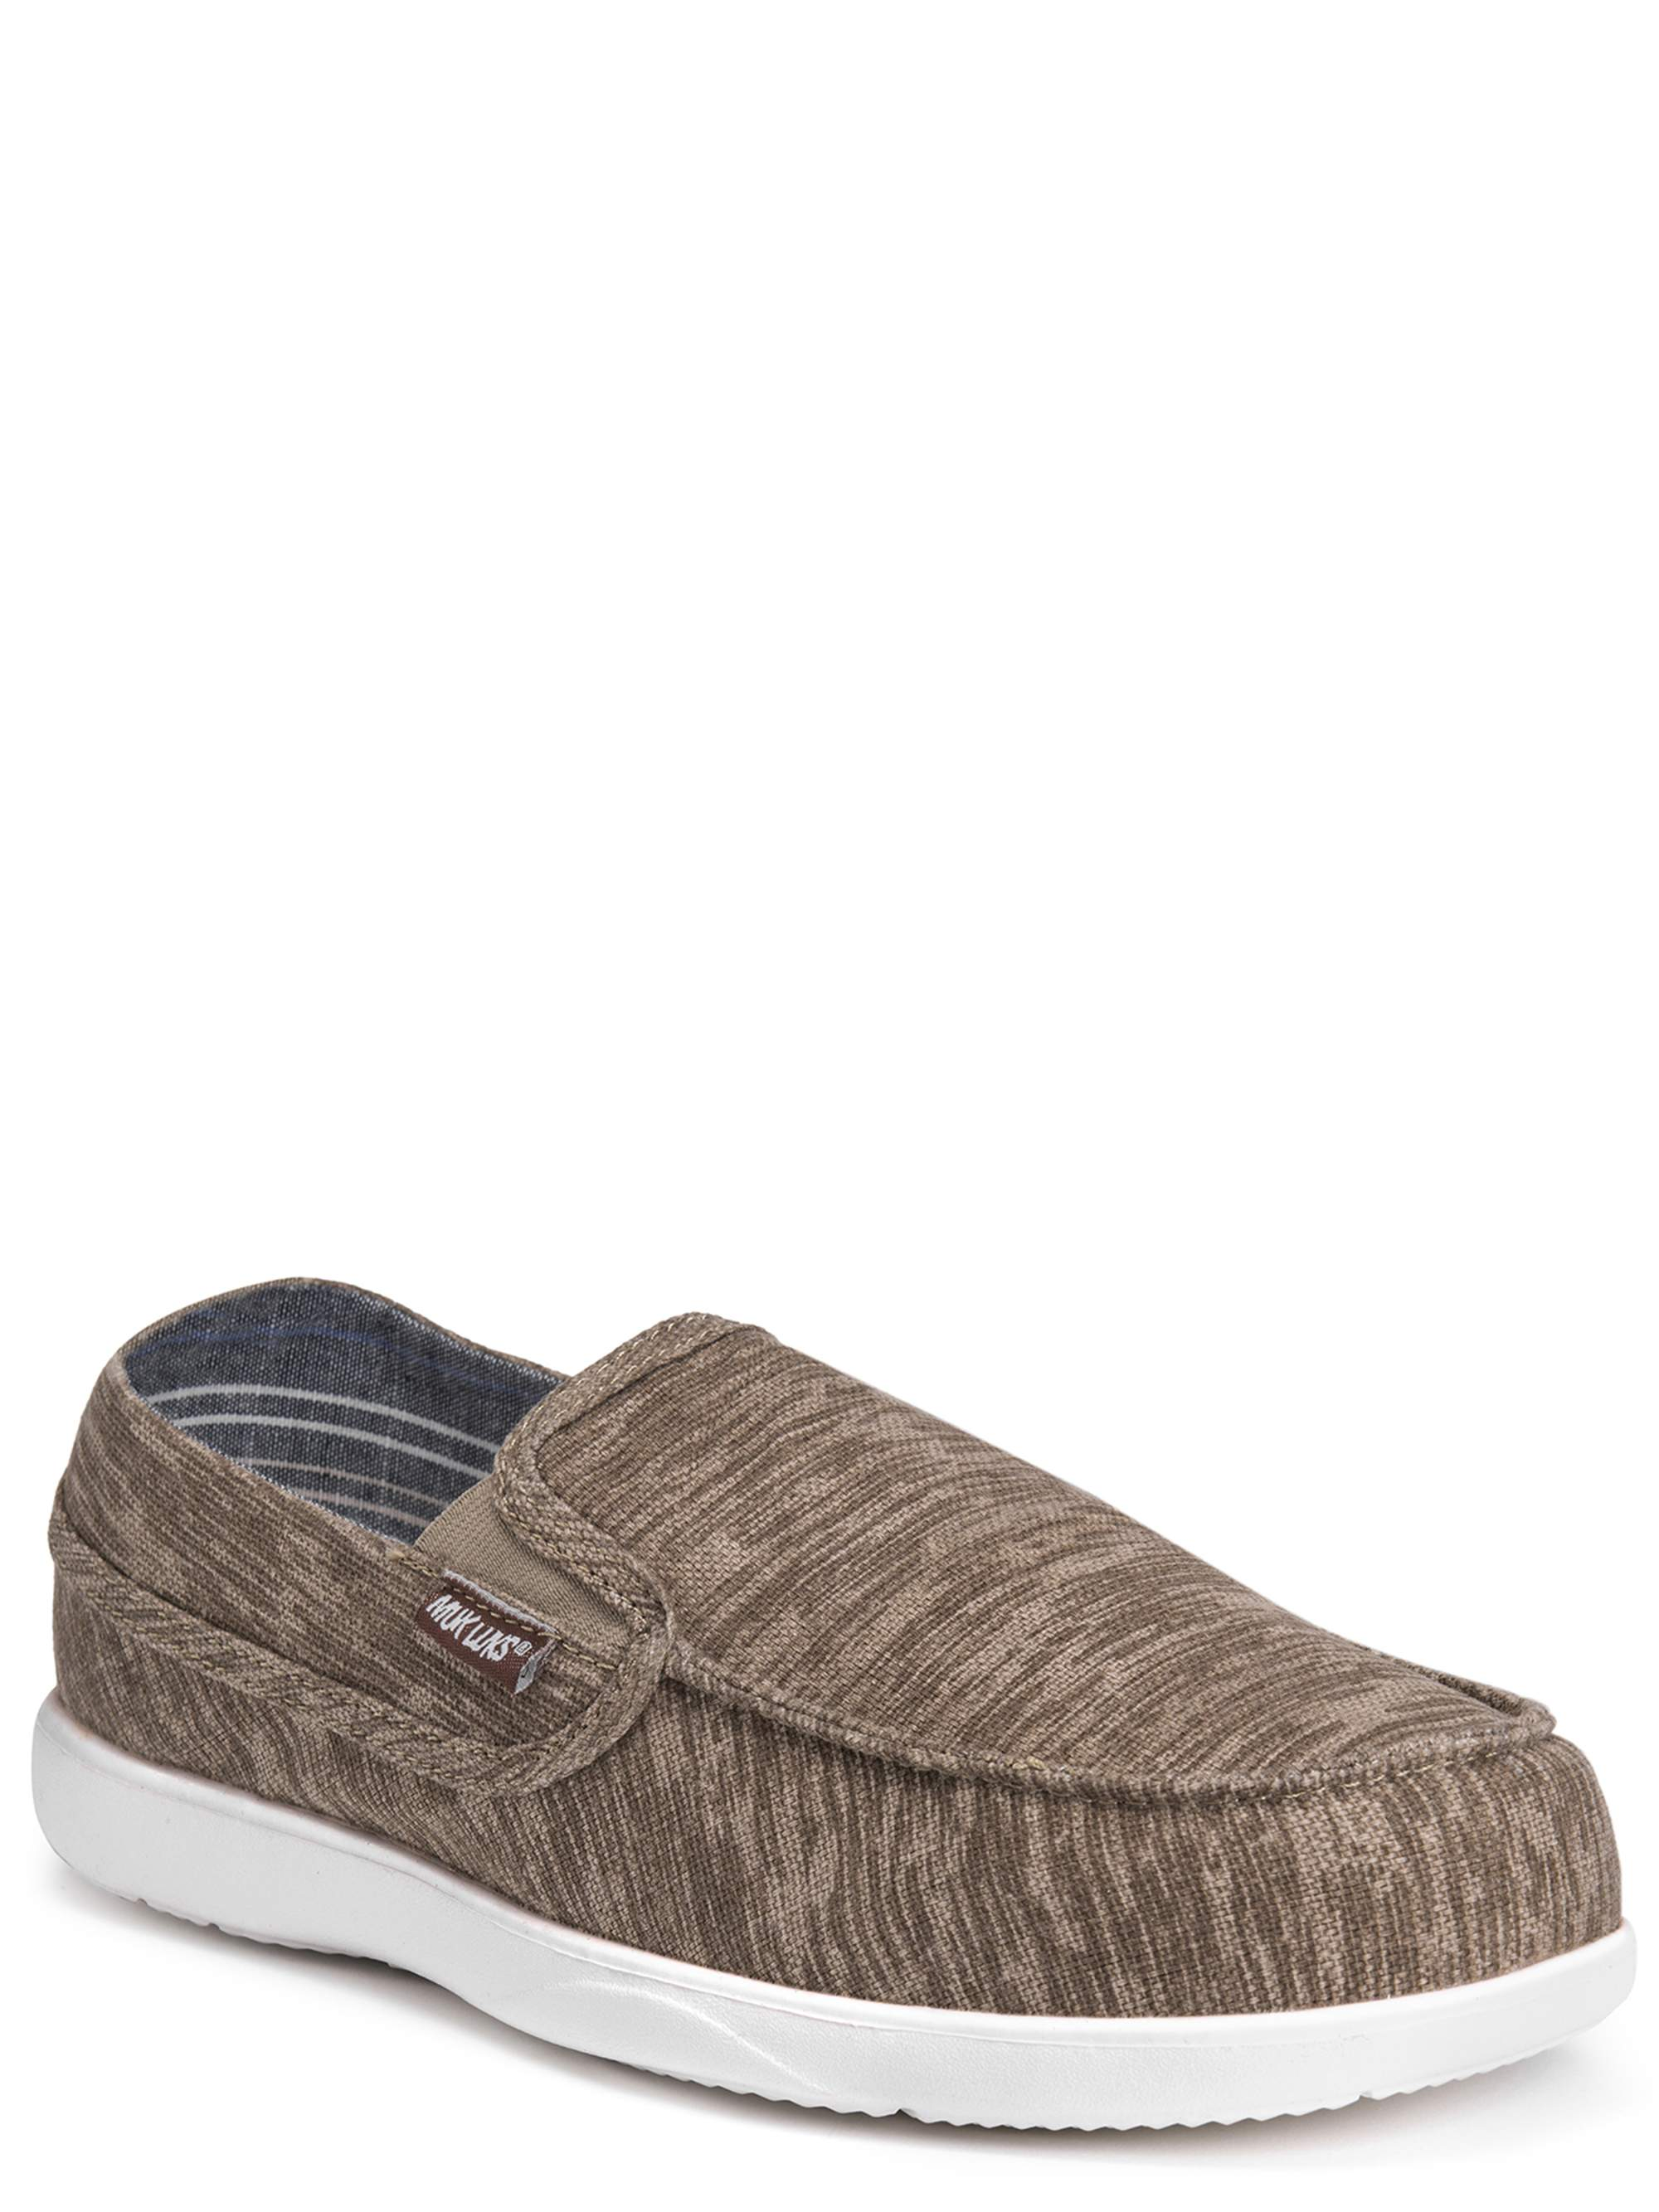 Men's Aris Slip-on Boat Shoes